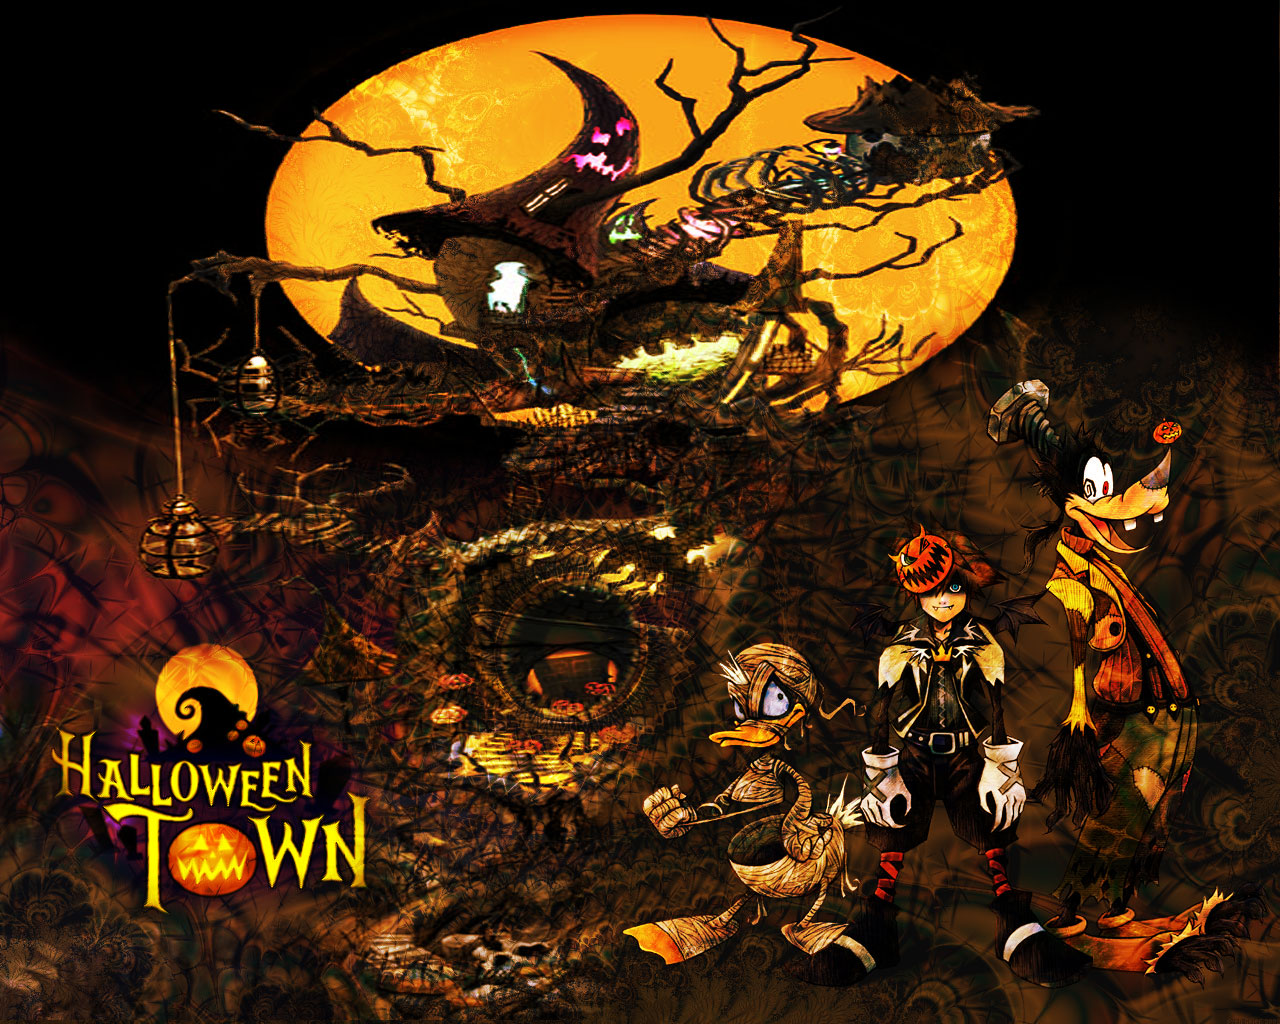 Fantastic Wallpaper Halloween Nightmare Before Christmas - halloween_town_wallpaper_v2_0_by_wild_espy  Snapshot_213287.jpg